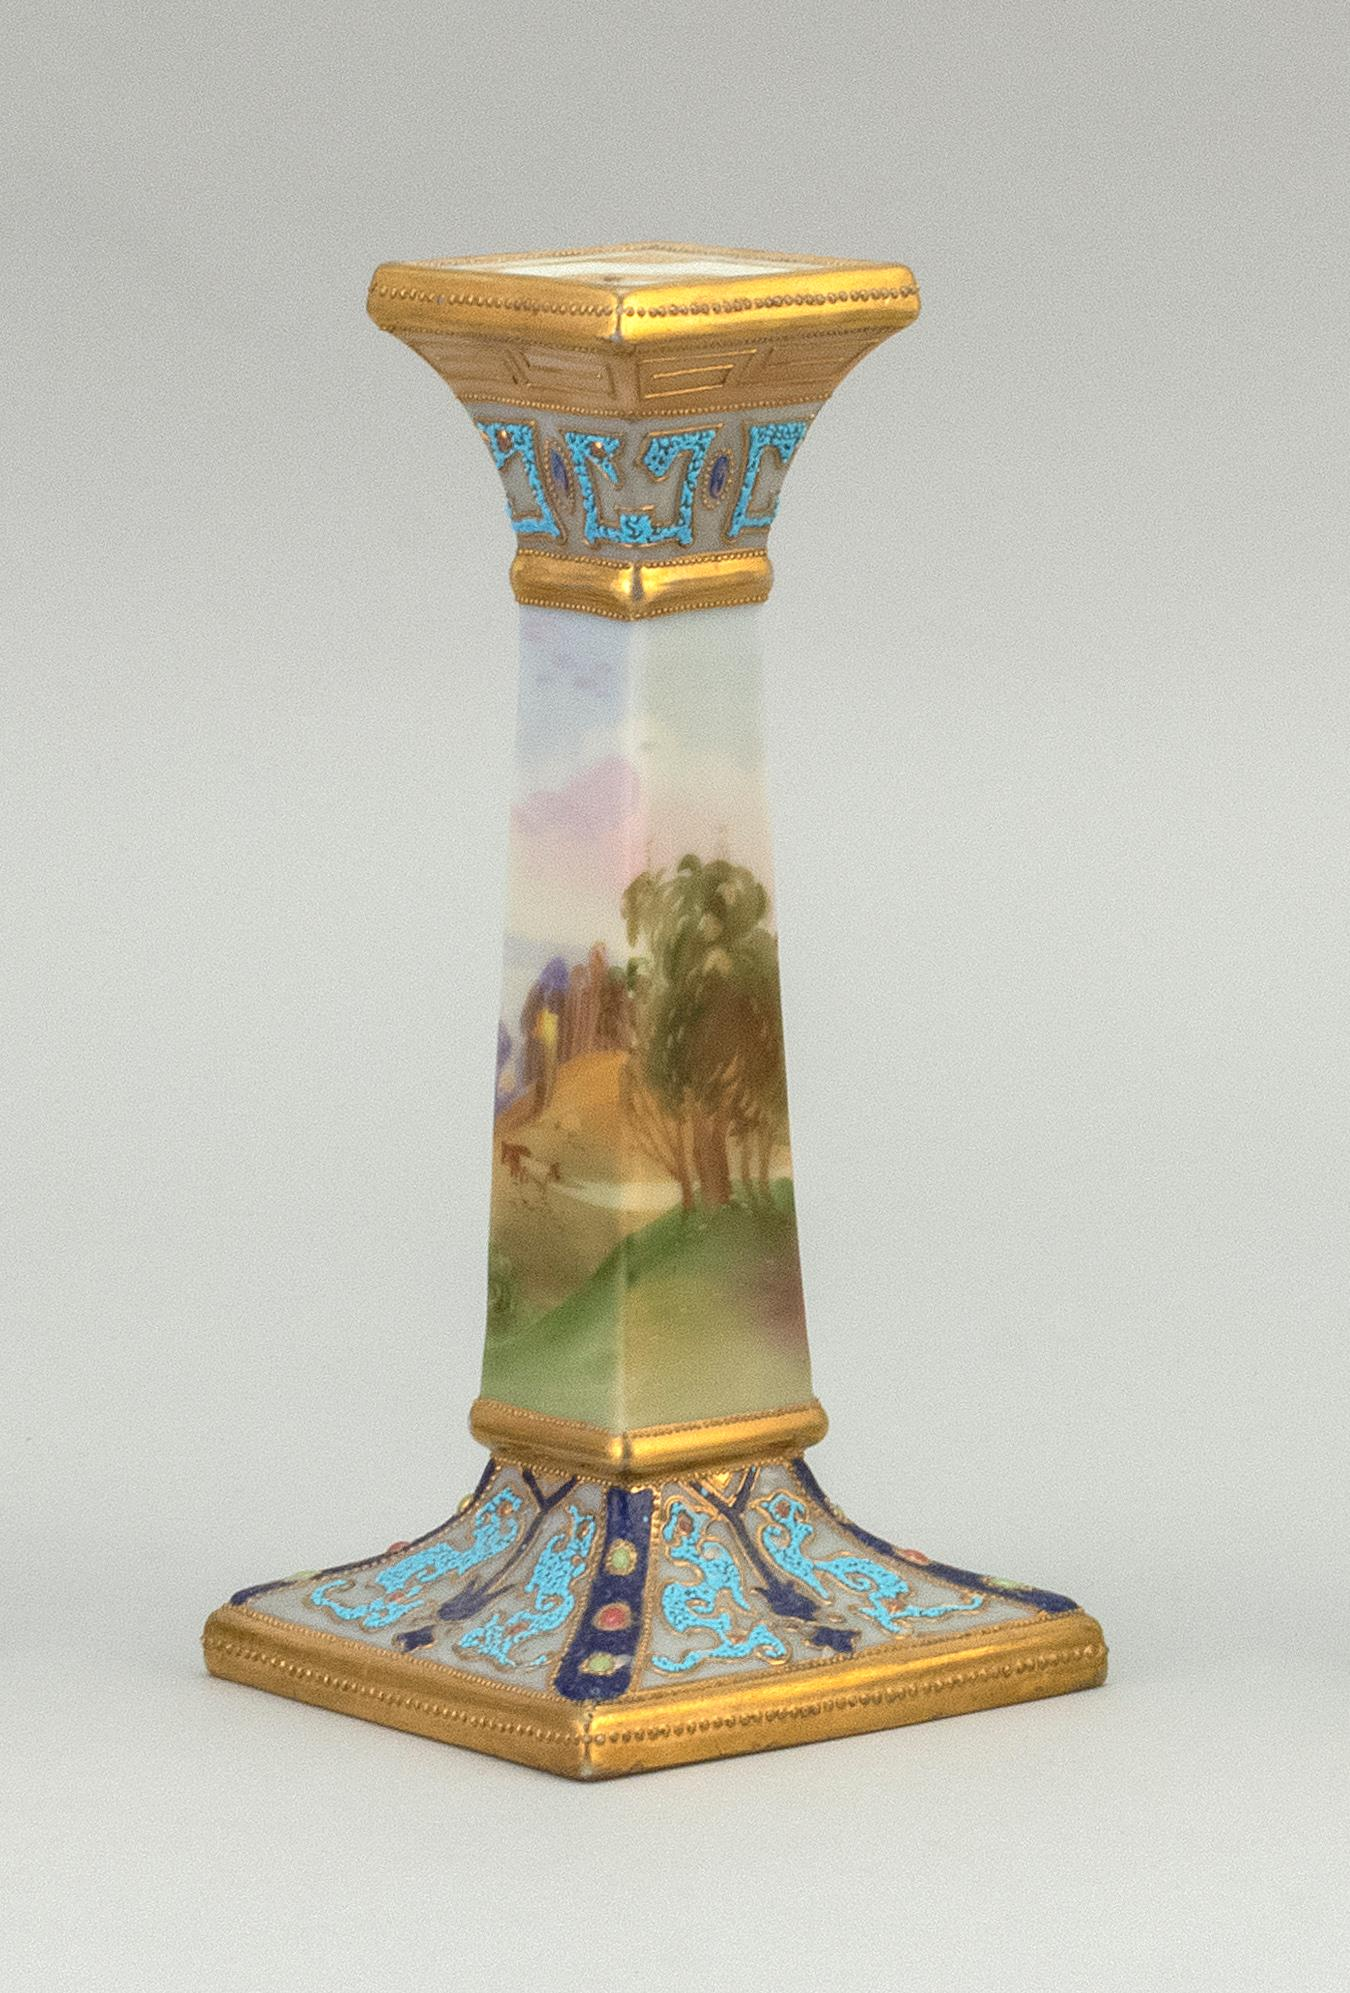 "NIPPON PORCELAIN CANDLESTICK With scenic decoration of cows in a landscape. Van Patten #47 mark on base. Height 7.5""."